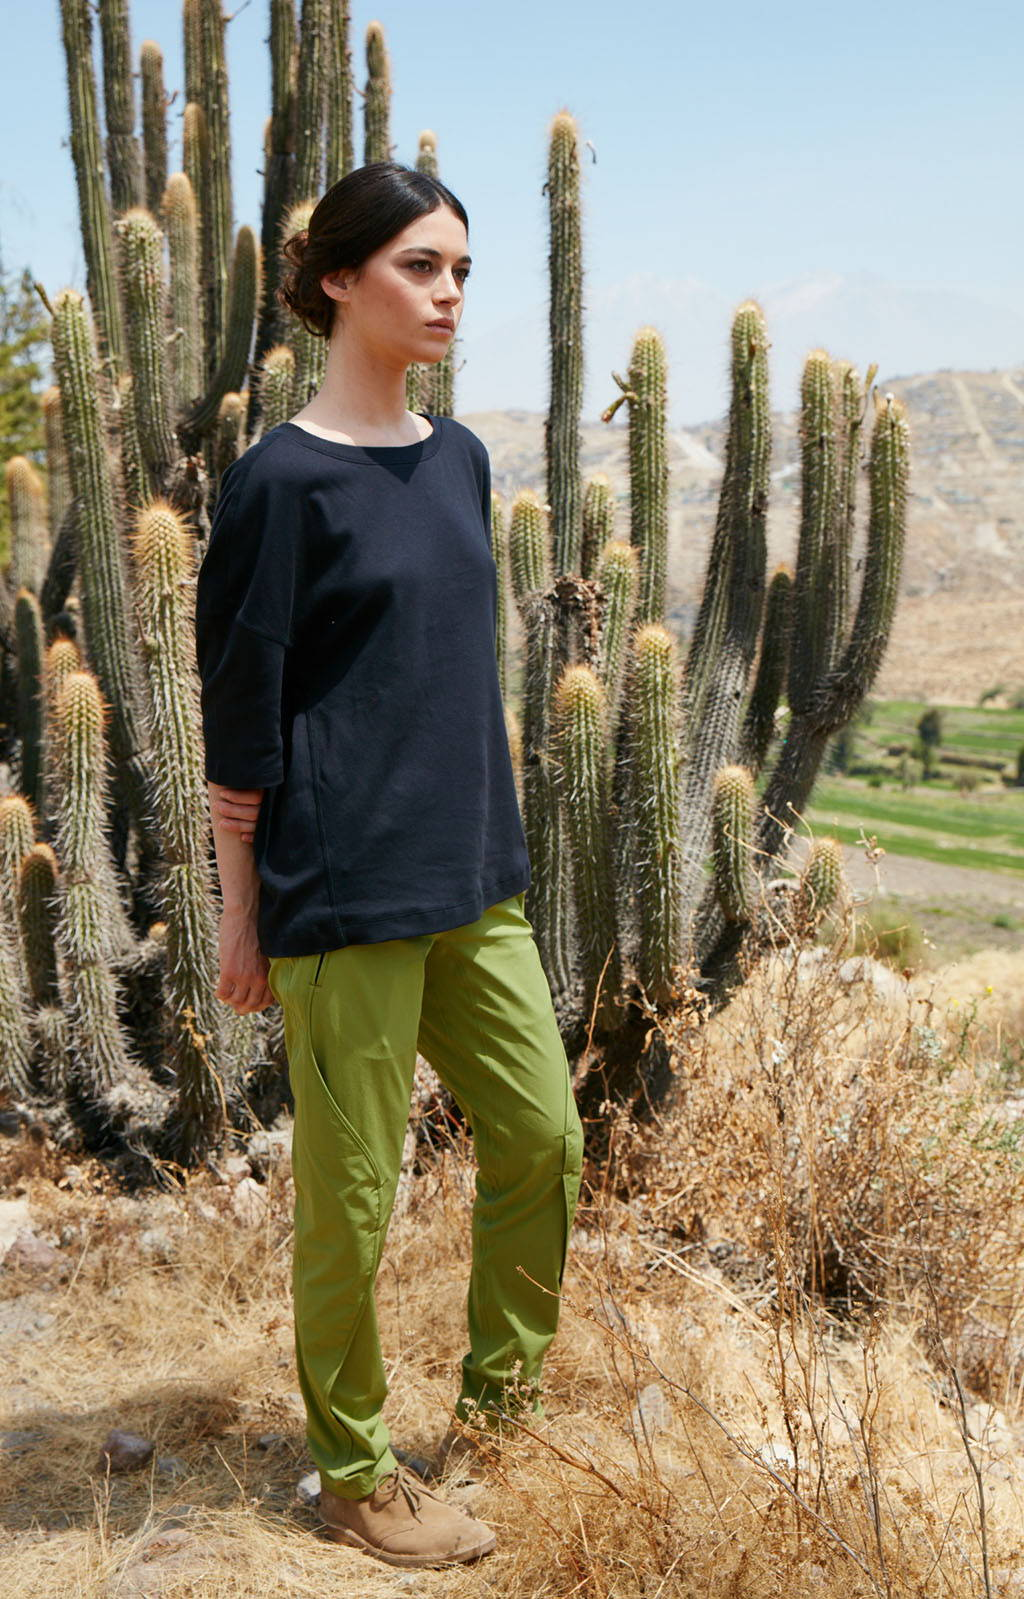 PURITY - METICULOUS CRAFTSMANSHIP, A BEAUTIFUL TRAVEL PANT MOSS GREEN